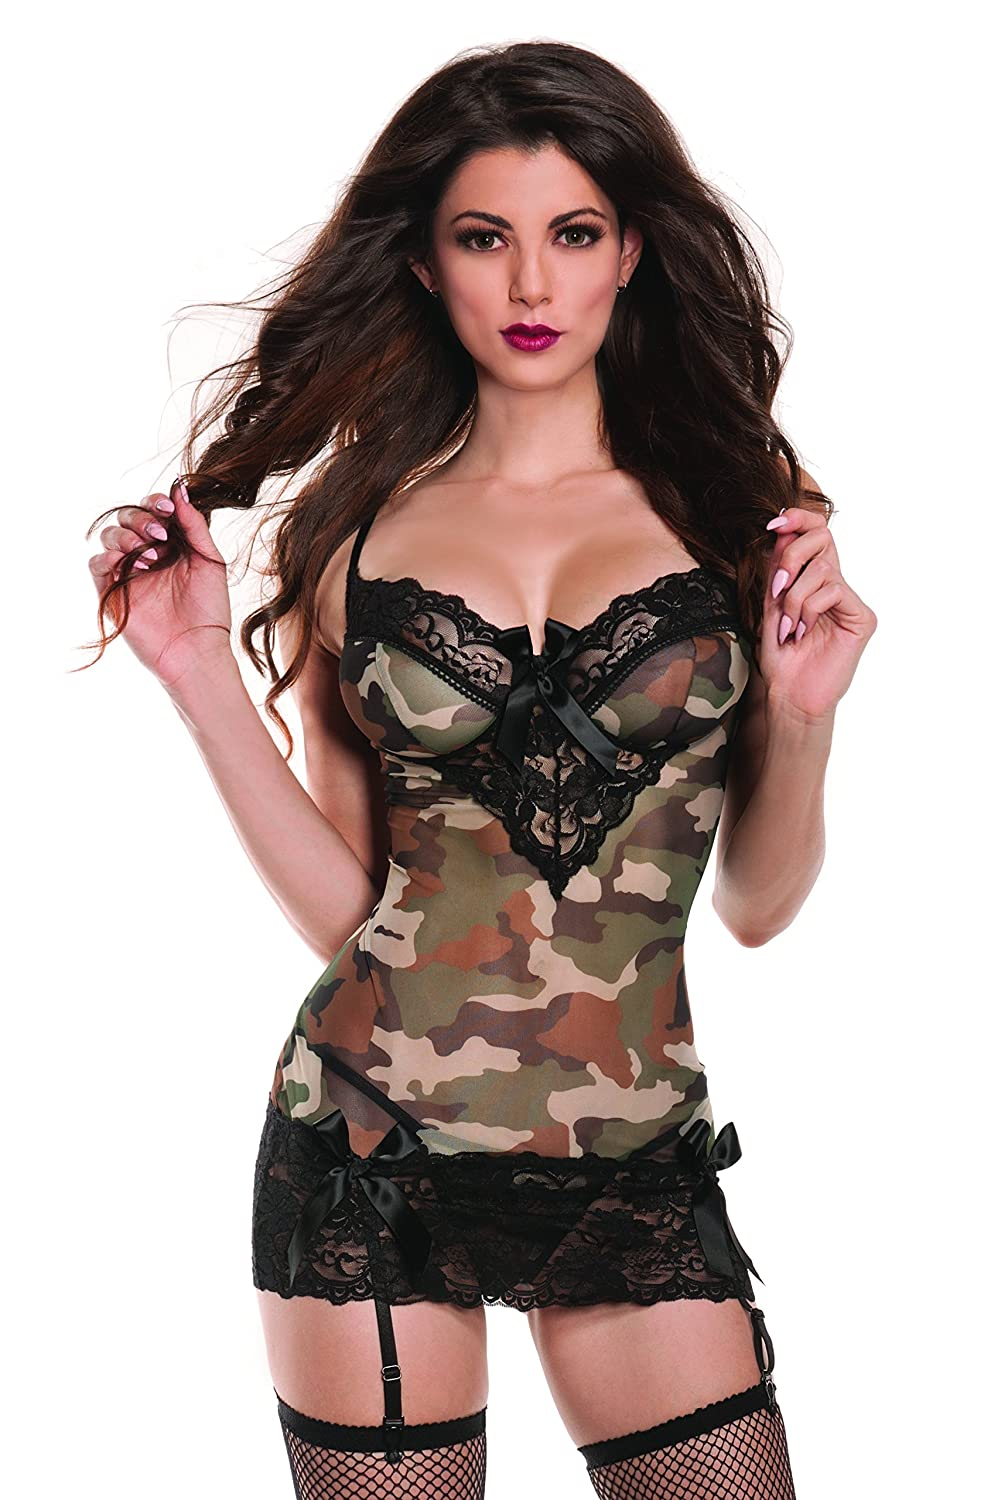 d3f99b4f09136 Amazon.com  Raveware Lingerie Women s Sexy Camouflage Chemise Lingerie Set  with Mathing G-String  Clothing